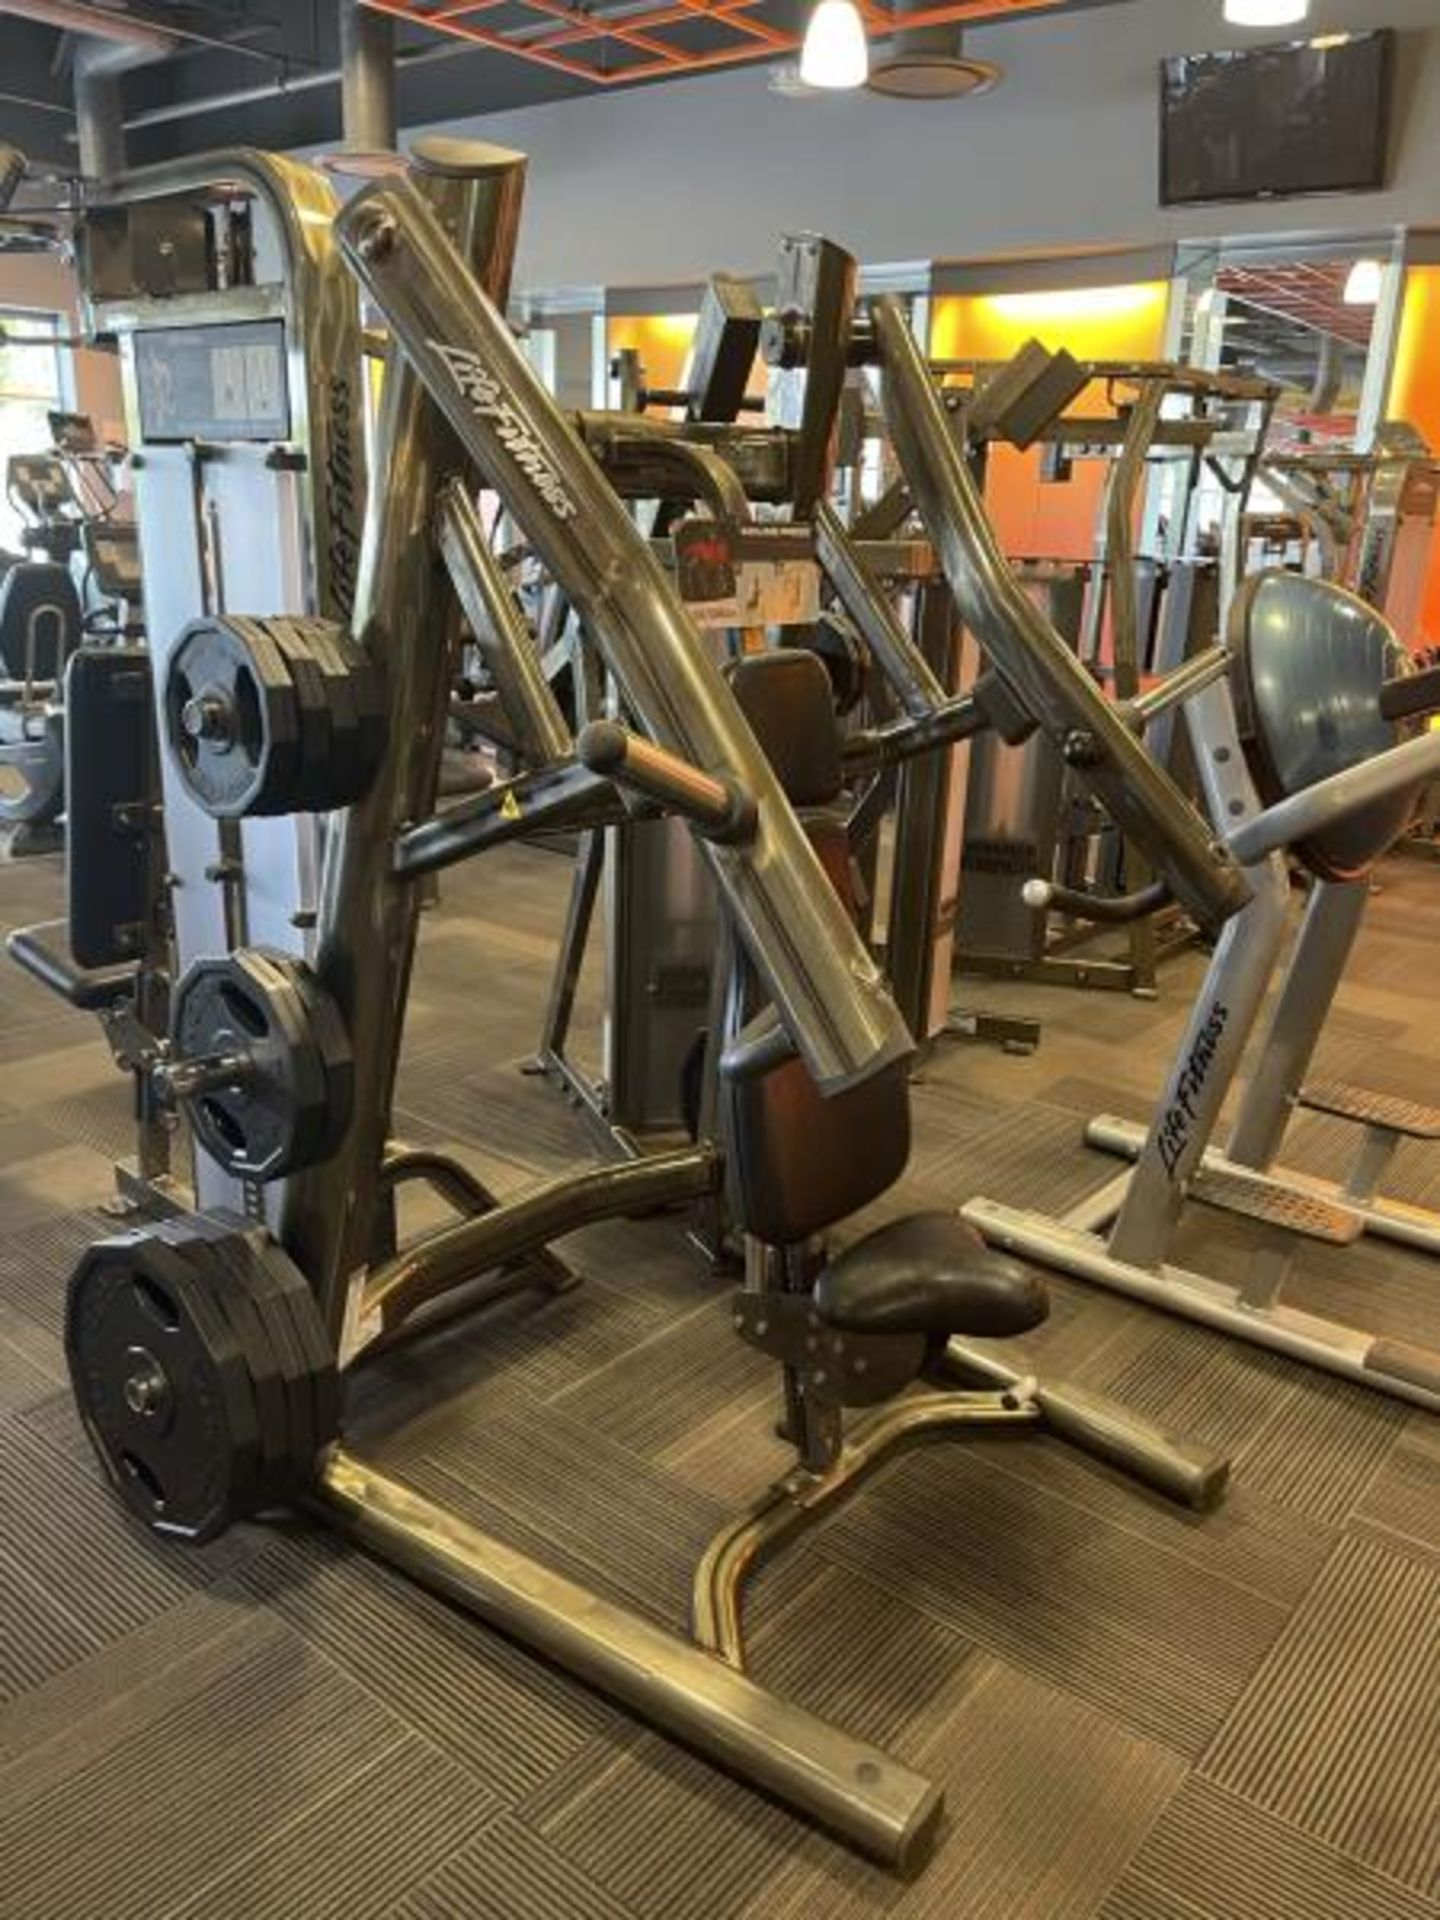 Incline Press with Iron Grip Weight Plates M: SPLIP - Image 2 of 6